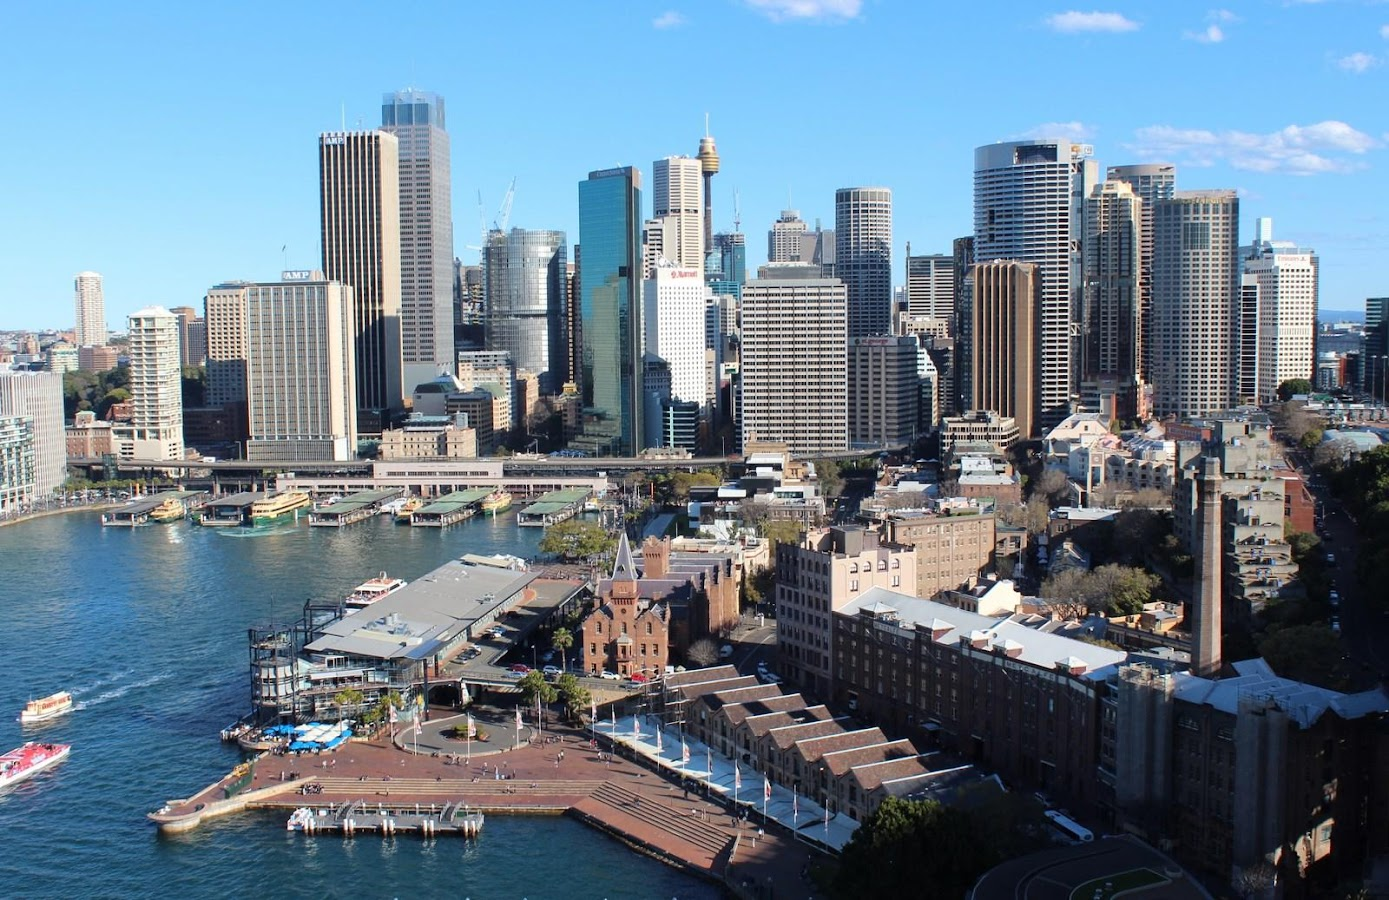 Sydney Australia Hd Wallpaper Android Apps On Google Play